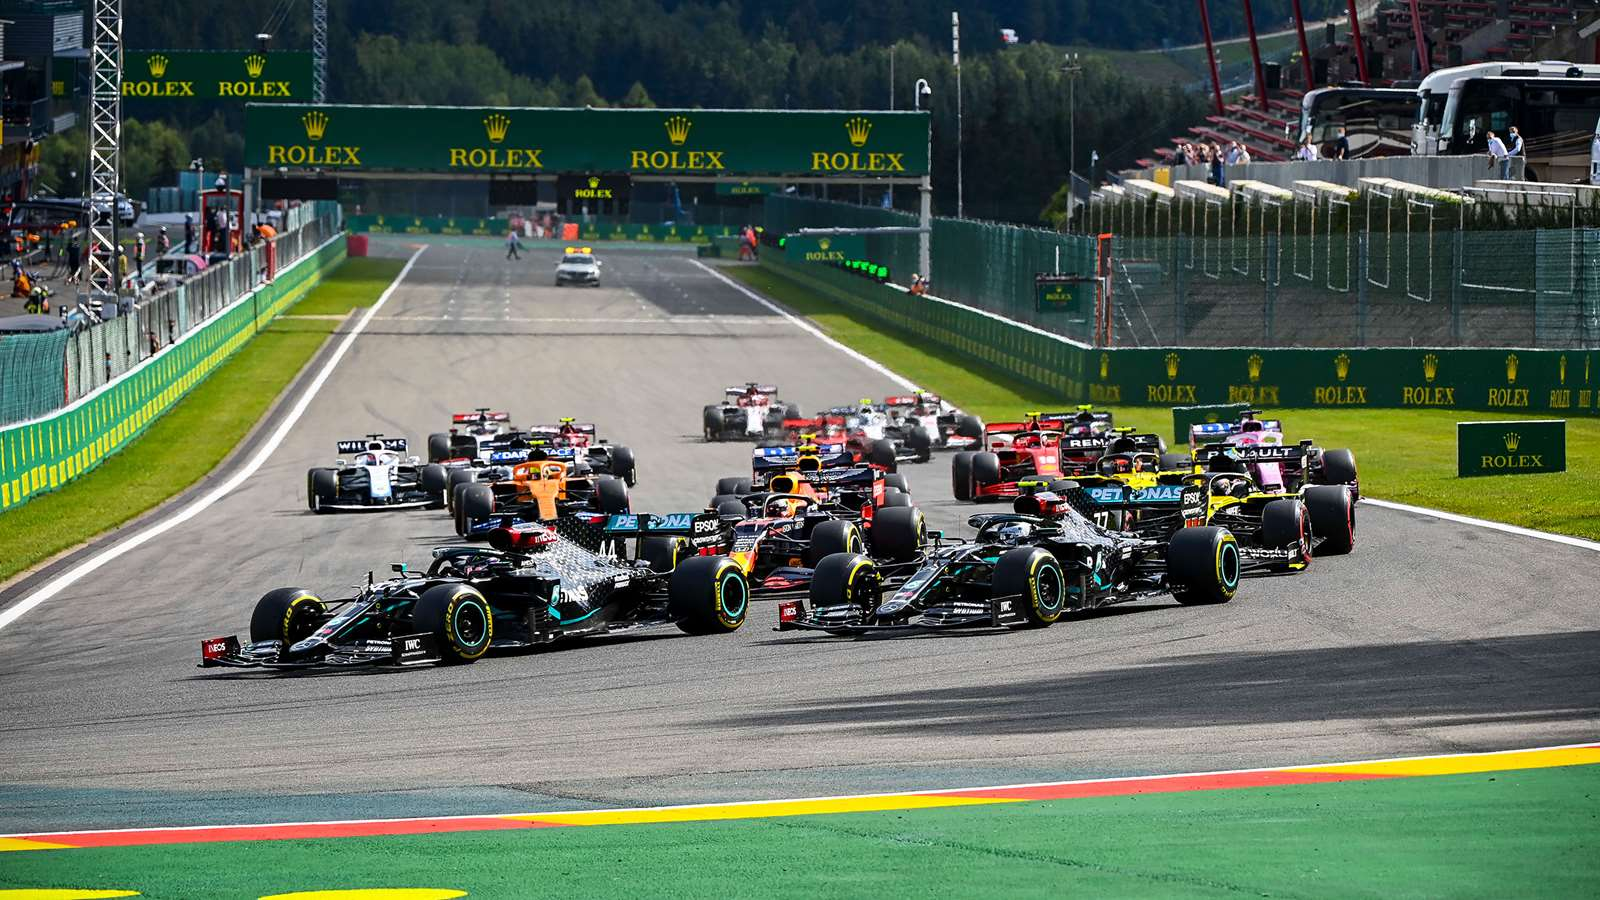 Updated: 2021 F1 Calendar – 23 race season proposed | GRR